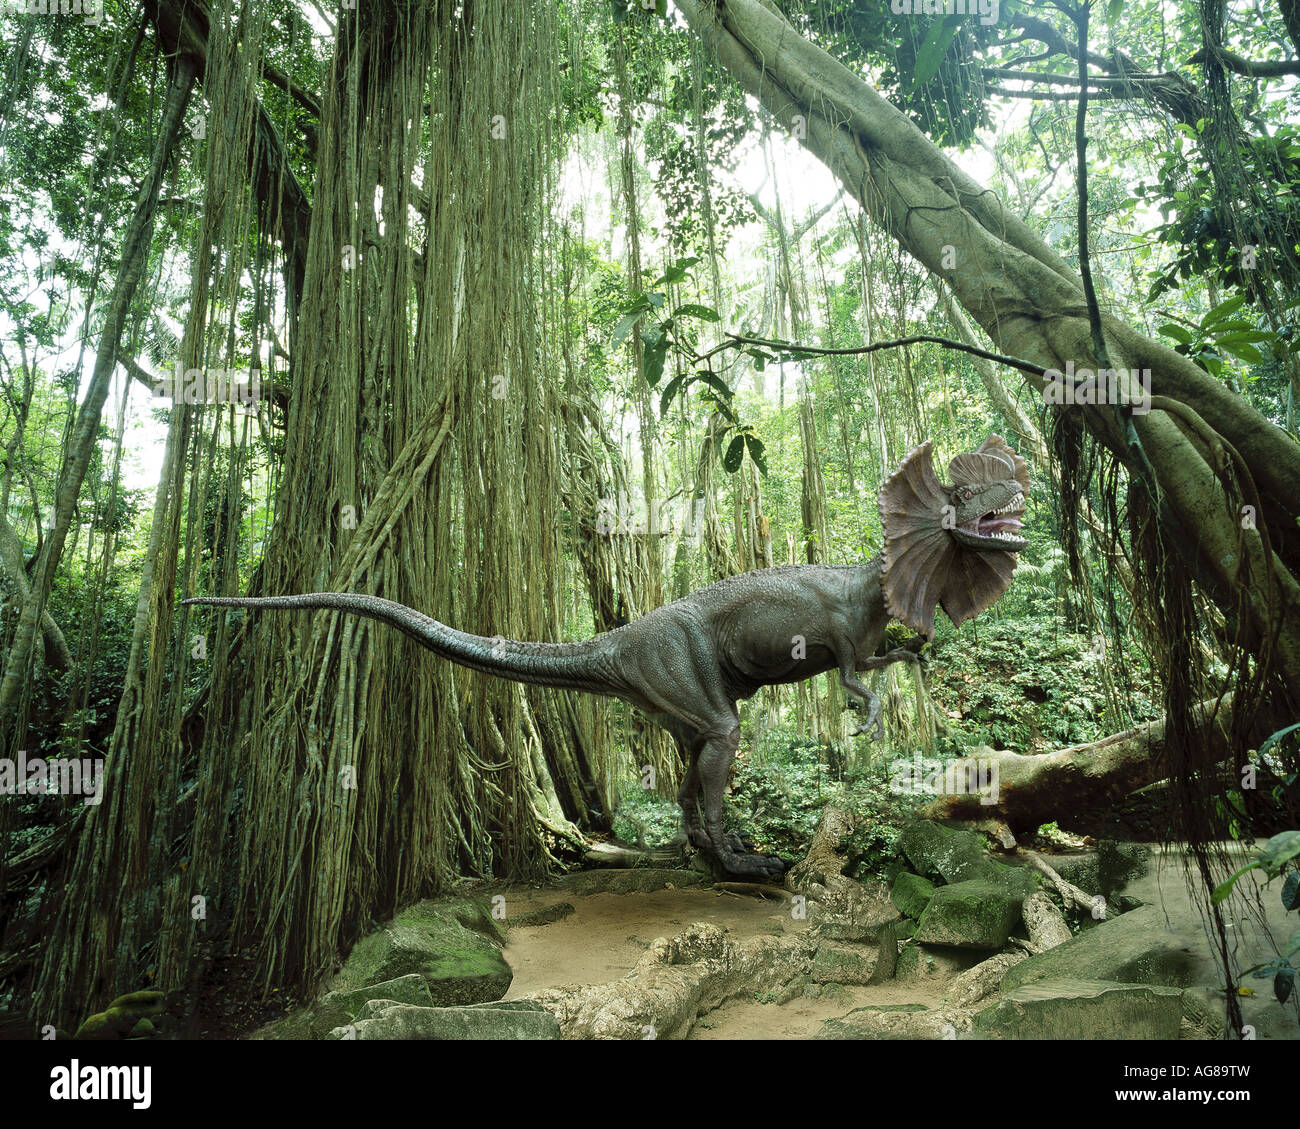 Dilophosaurus (the 'spitter') dinosaur in a tropical jungle environment - Stock Image